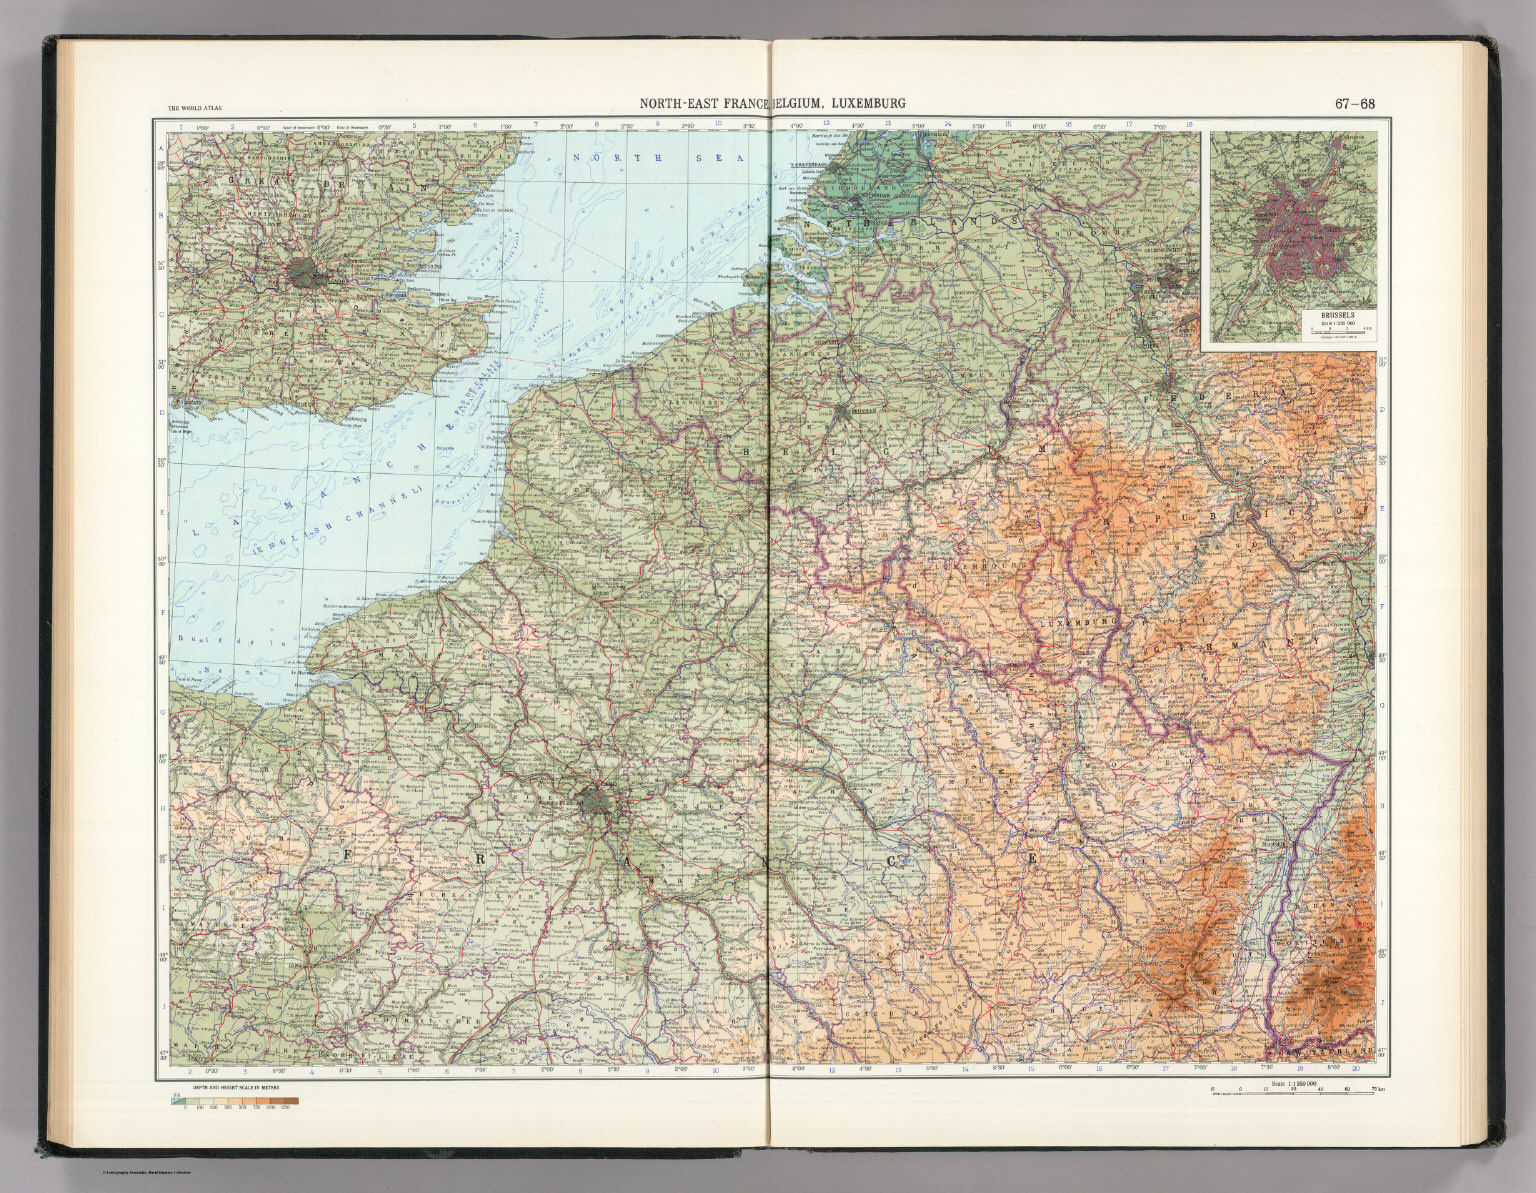 67 68 north east france belgium luxemburg the world atlas north east france belgium luxemburg the world atlas gumiabroncs Gallery